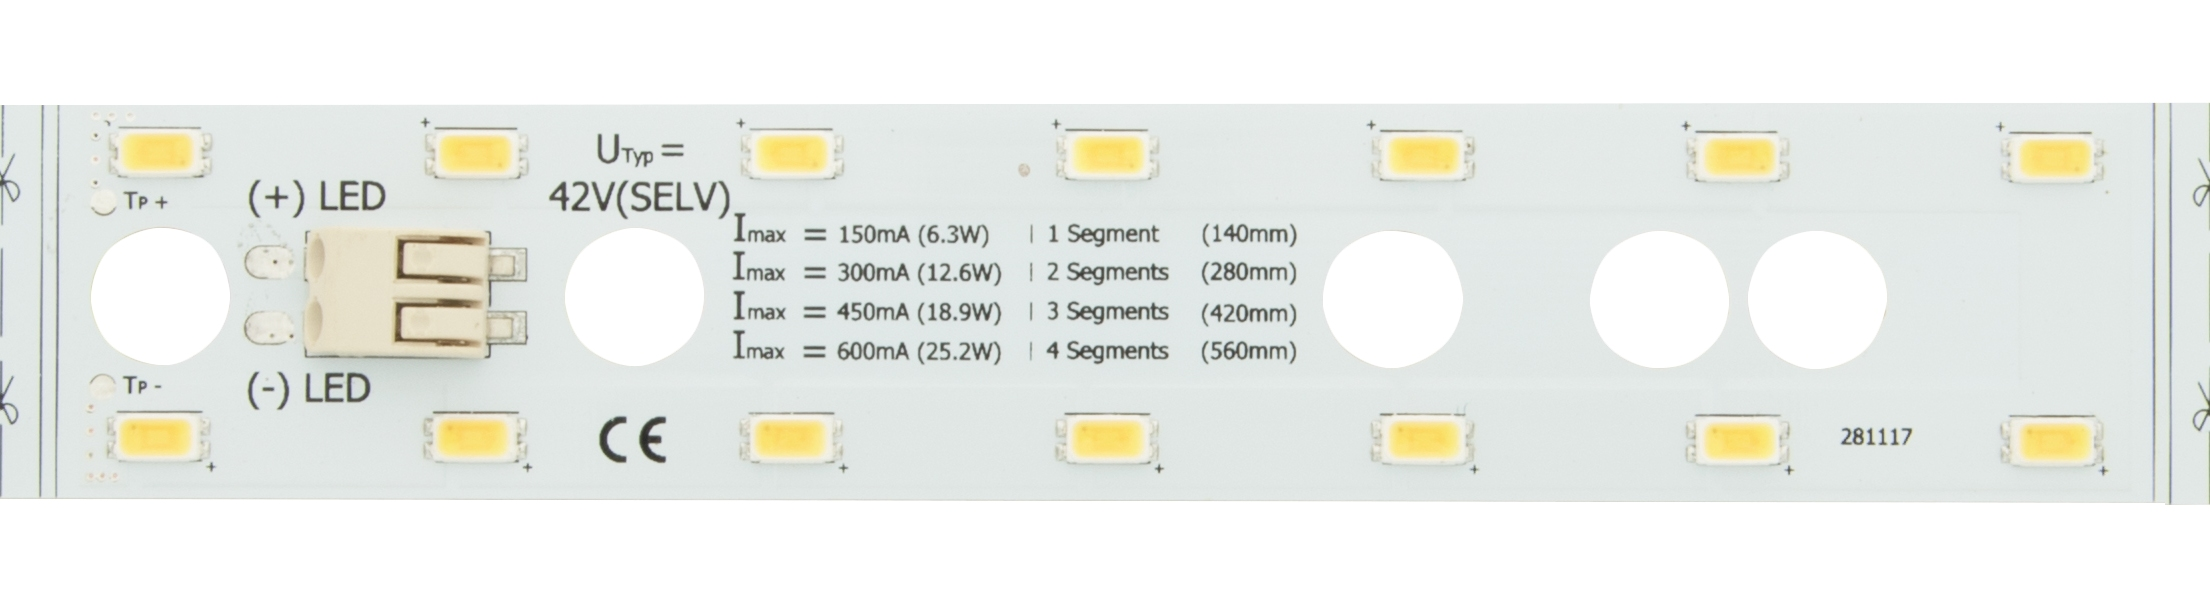 1 Stk LED Platinen Modul 25 UWW (Ultra Warm Weiss)-IP20,CRI/RA 80+ LIPM002827